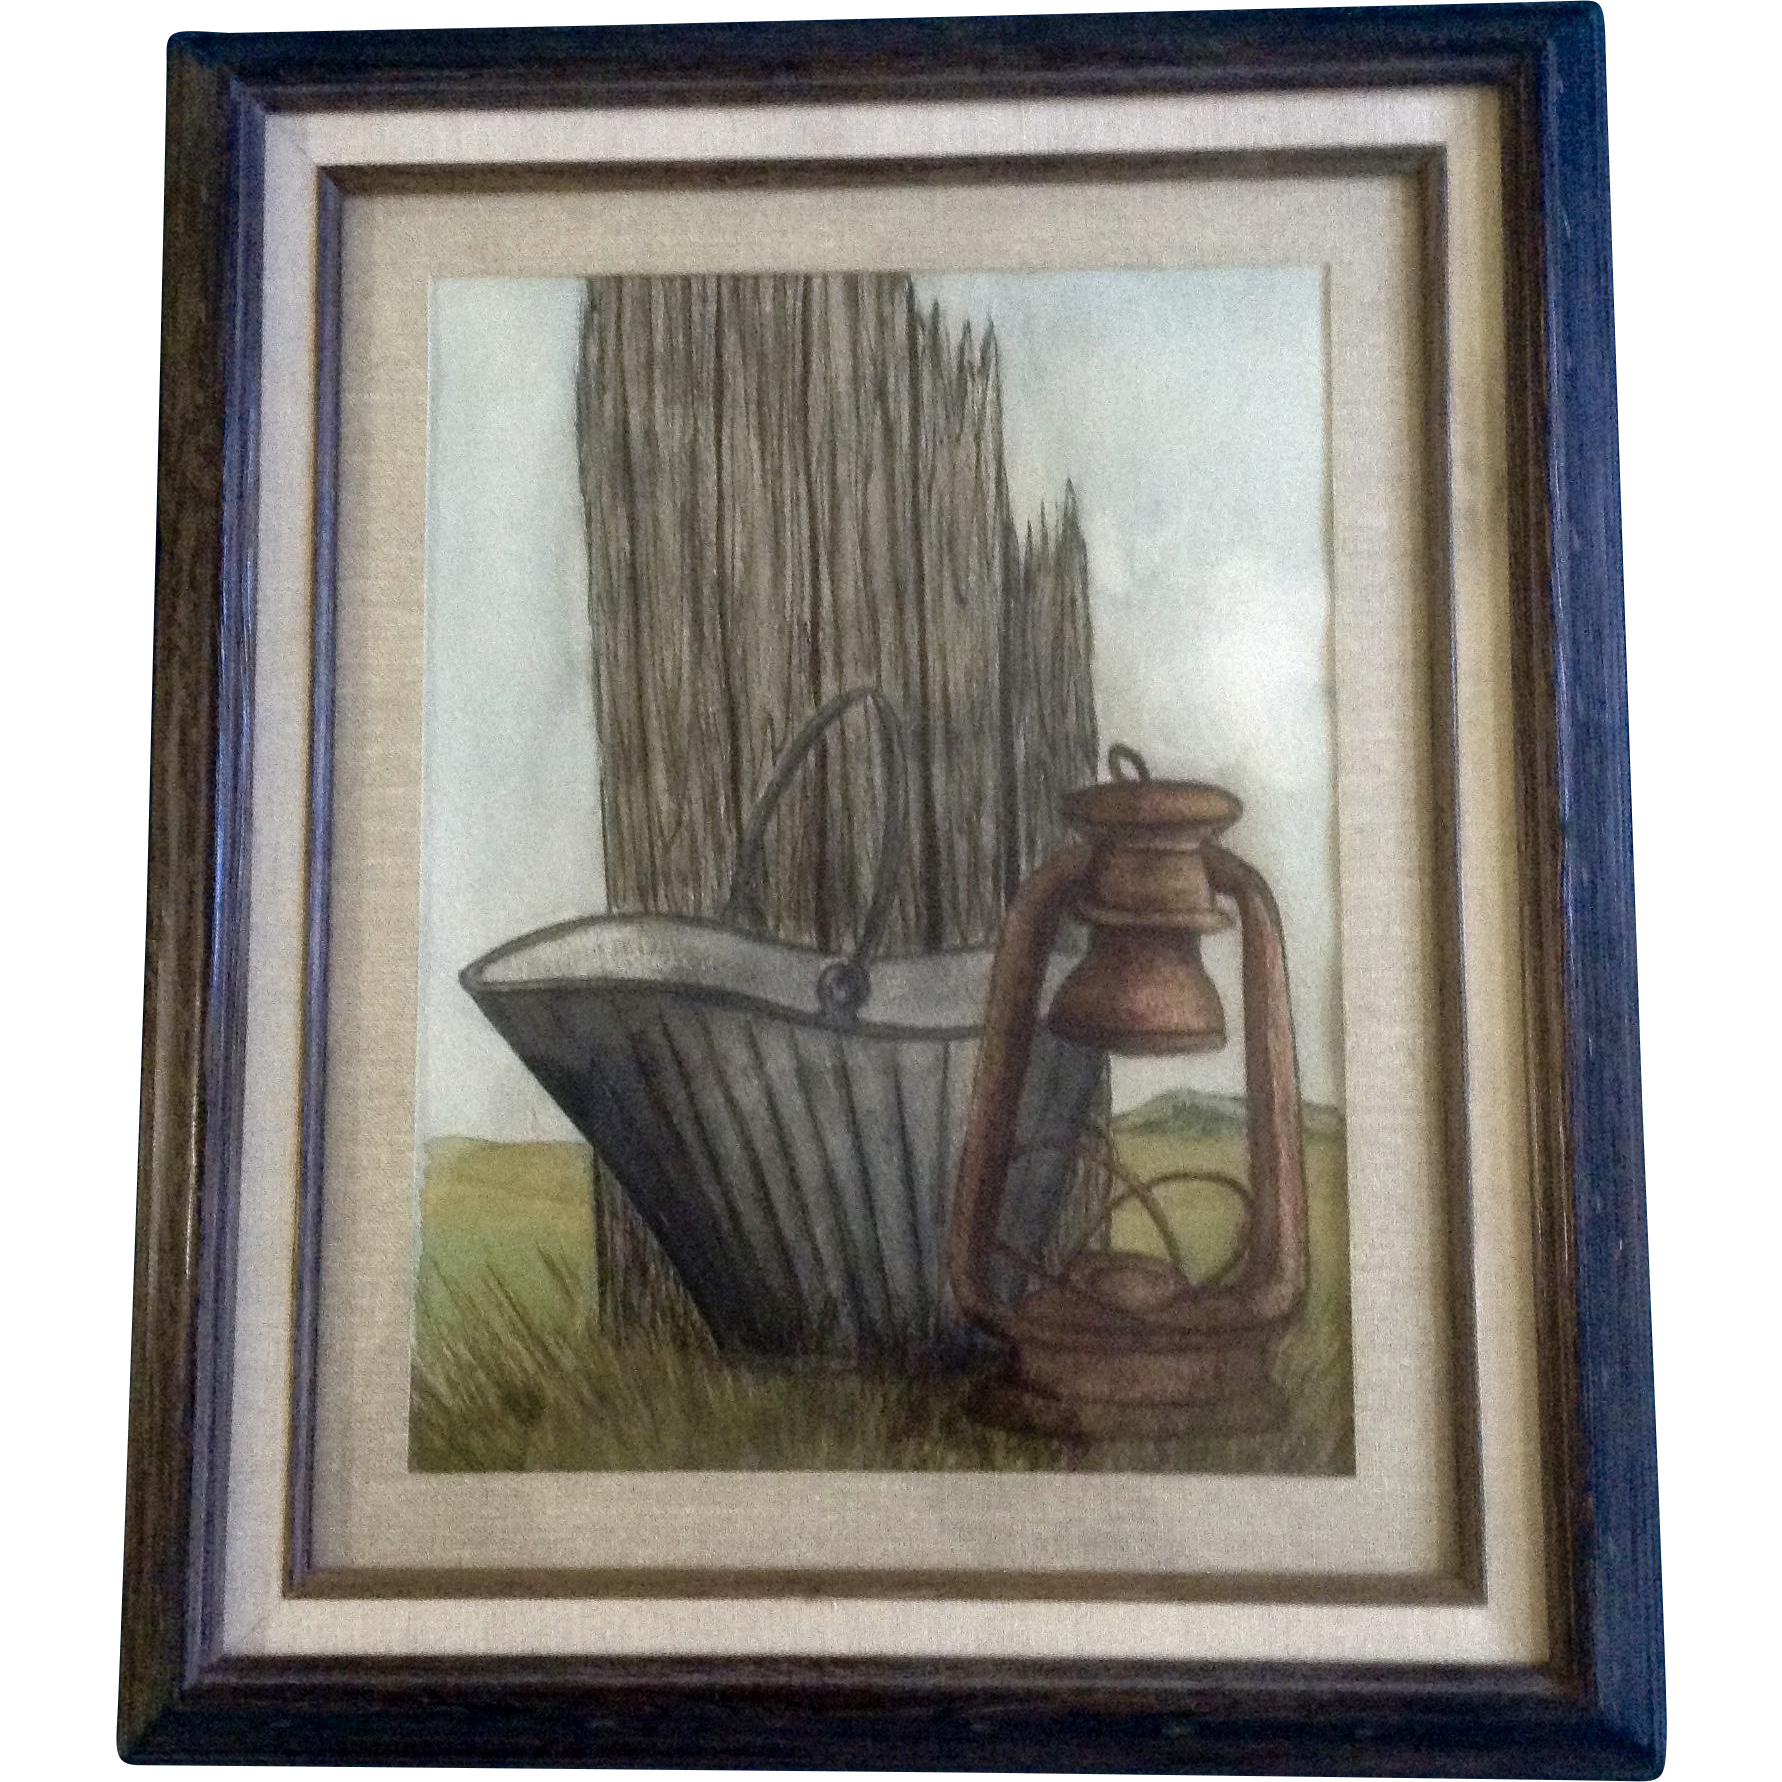 Colorado drawing watercolor. Old coal bucket and